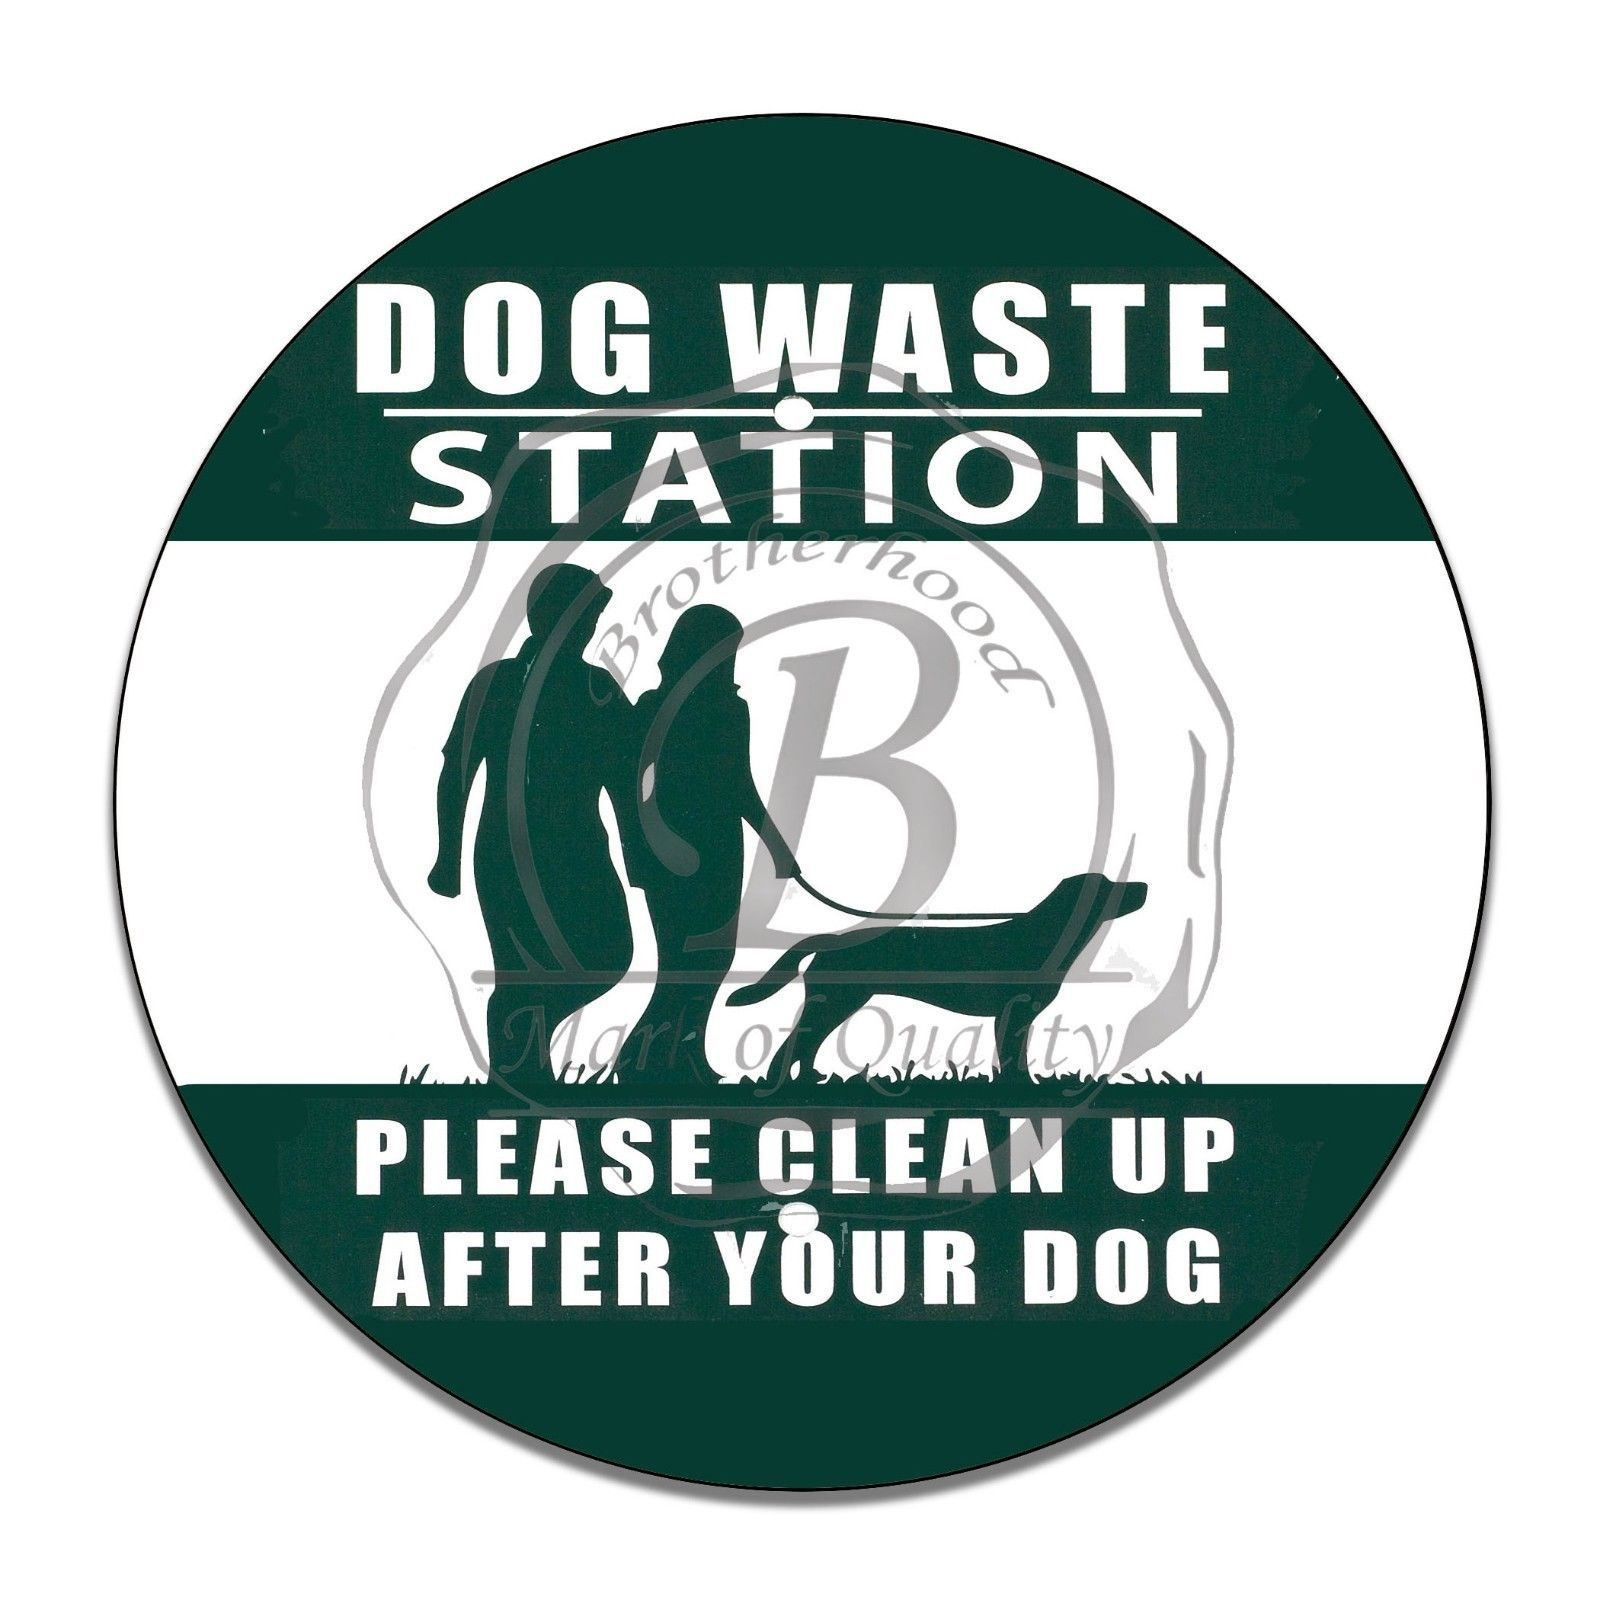 "Primary image for Dog Waste Station Please Clean Up After Your Dog 12"" Circle Aluminum Sign"